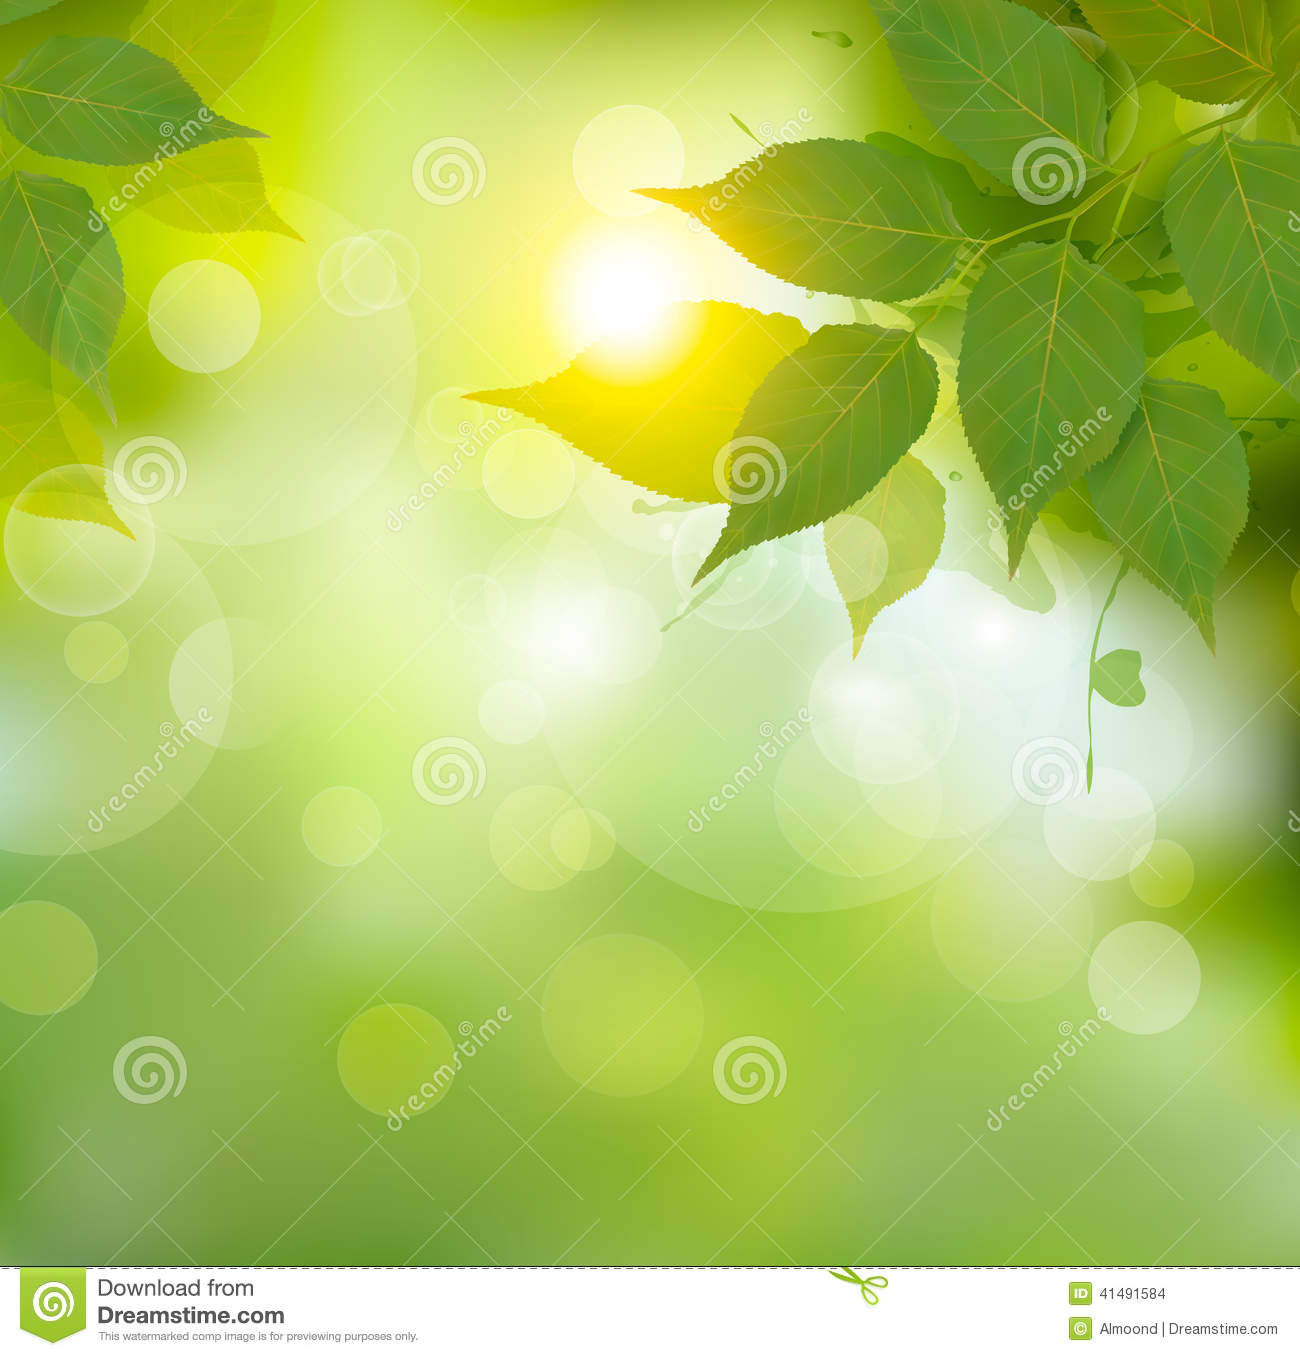 Nature background with green spring leaves.